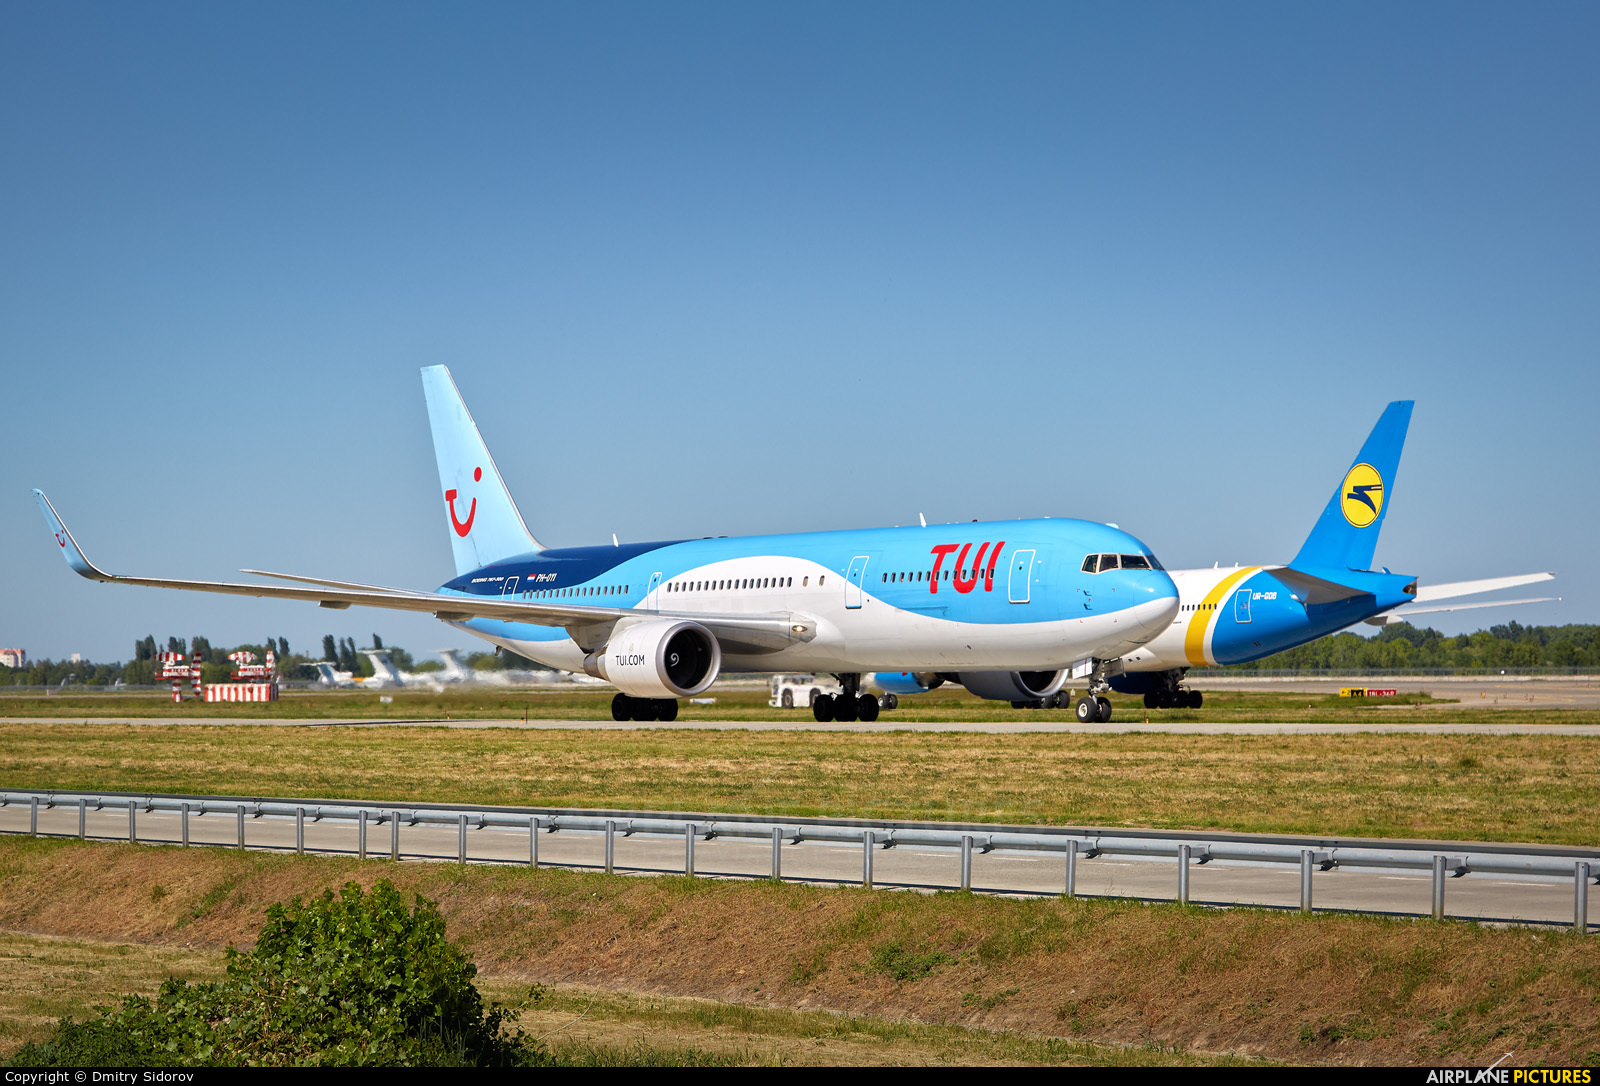 TUI Airlines Netherlands PH-OYI aircraft at Kyiv - Borispol